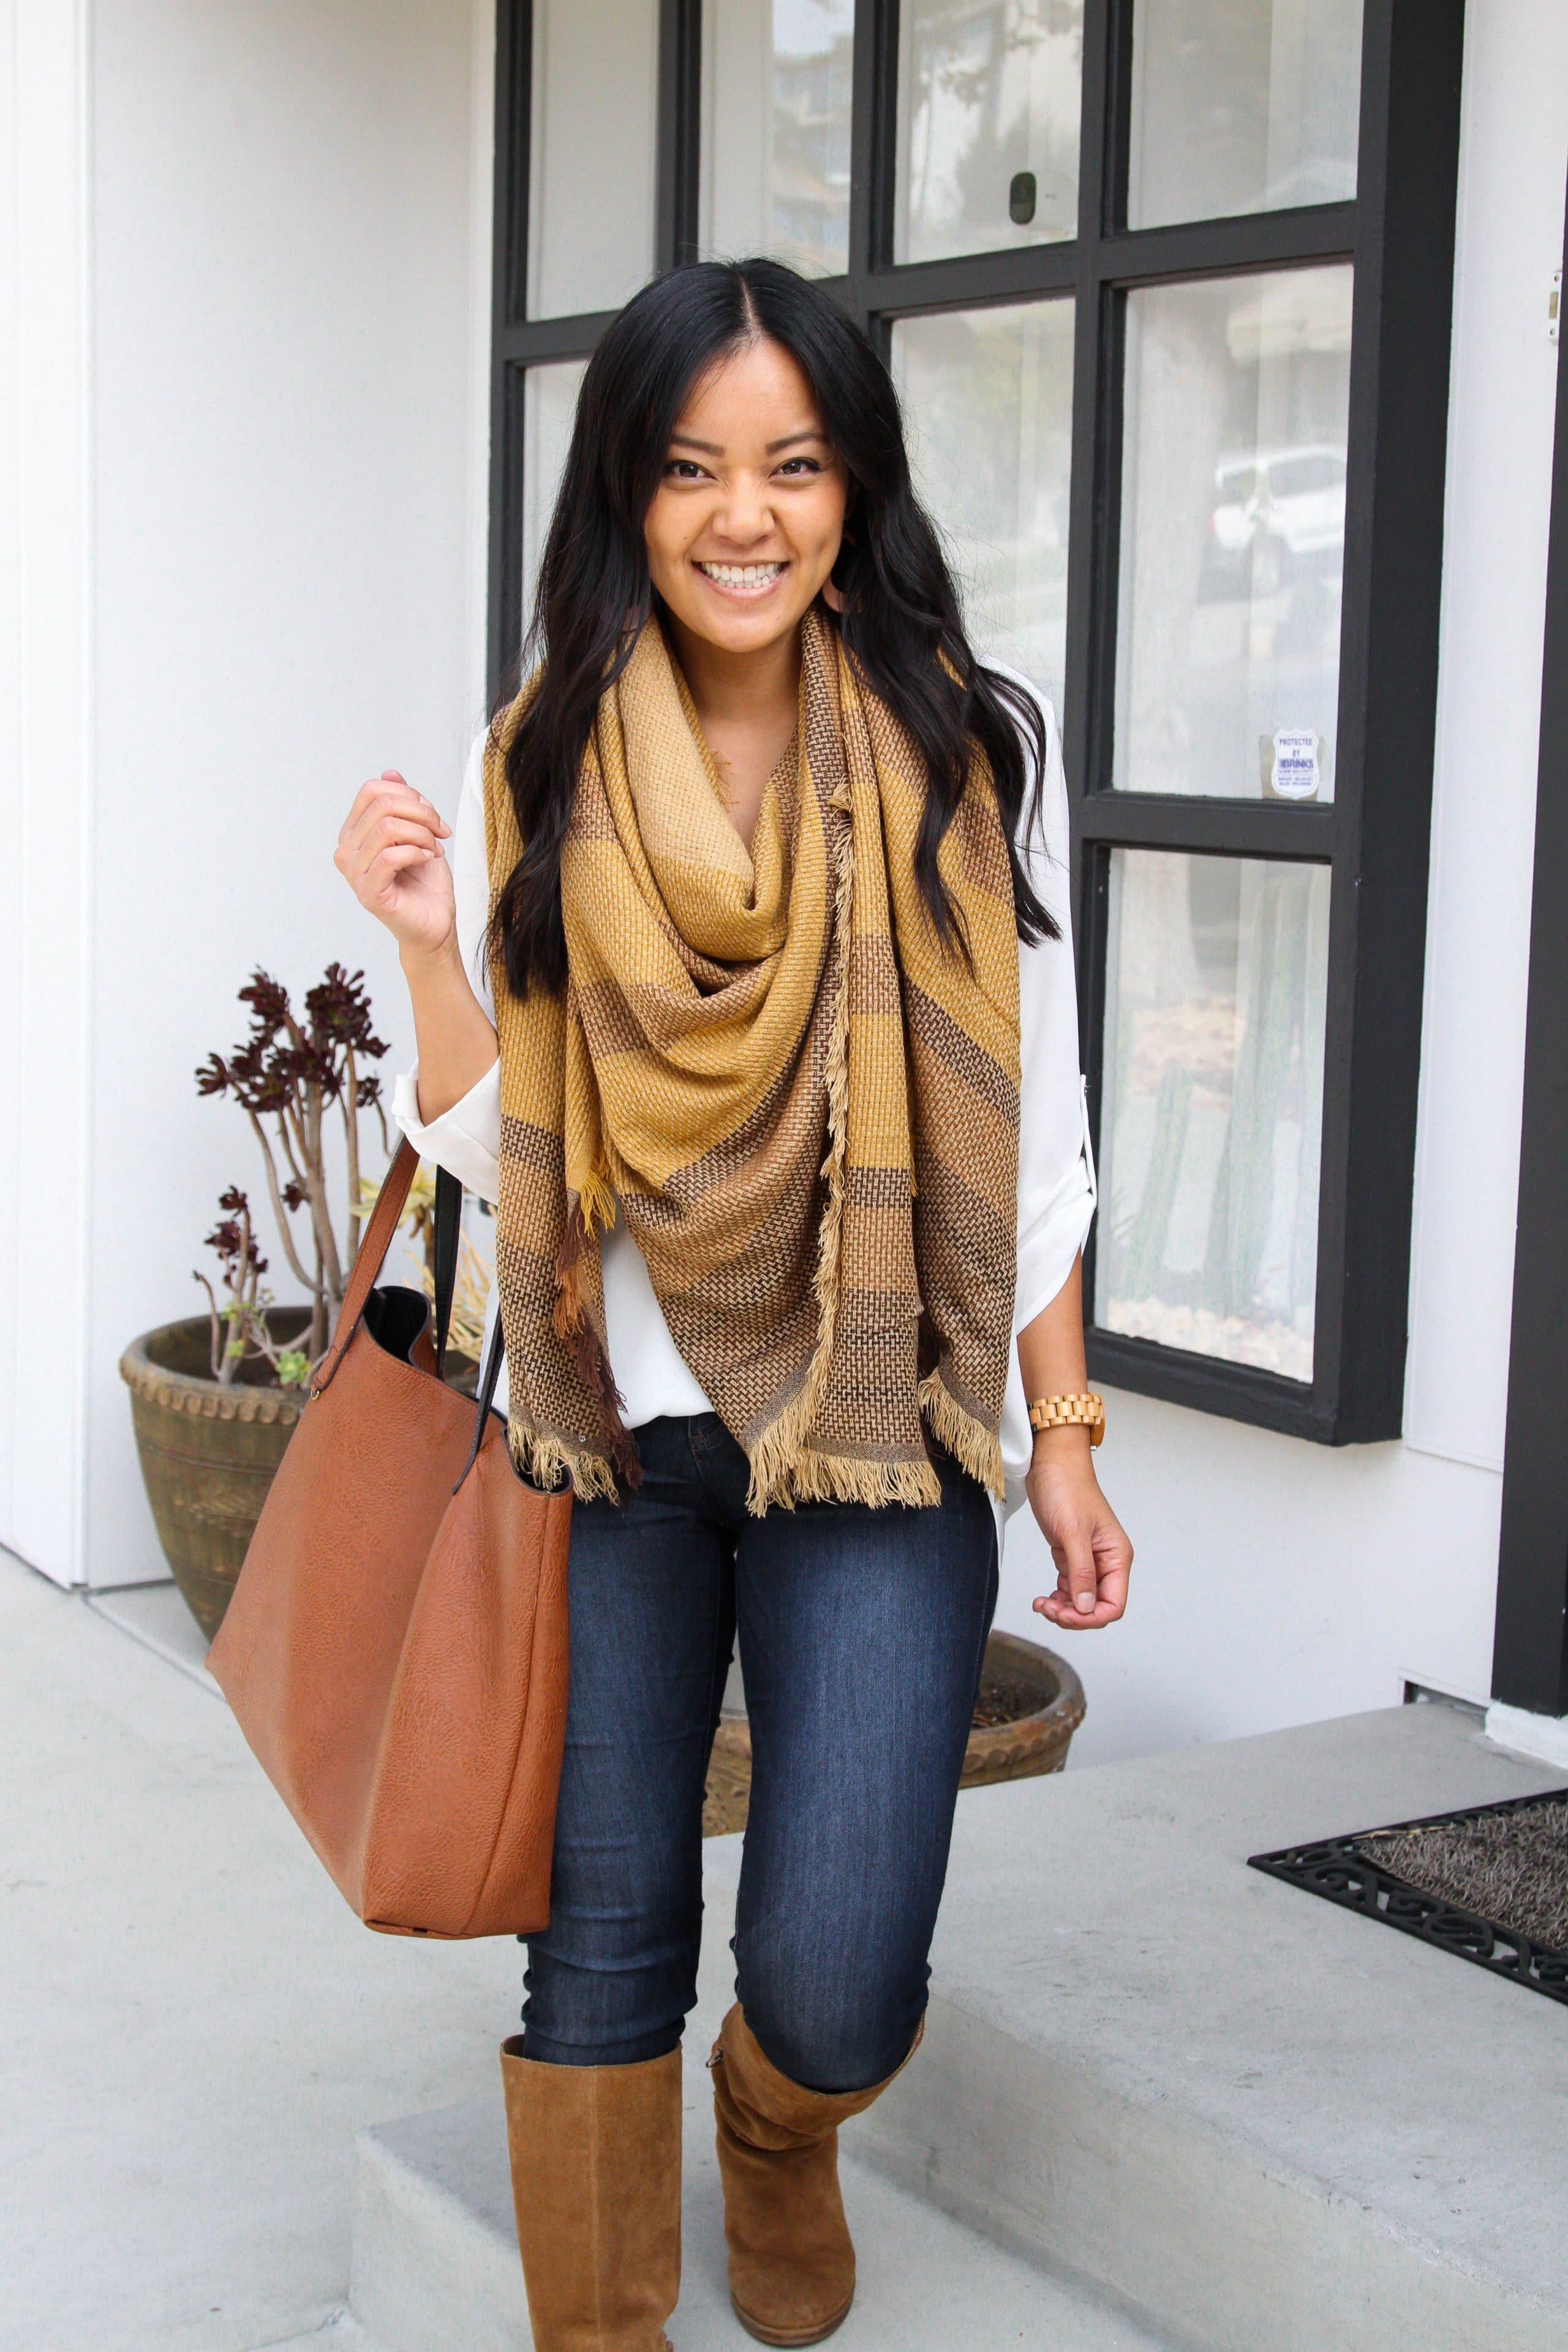 cognac bag + white tunic + yellow blanket scarf + skinny jeans + suede boots